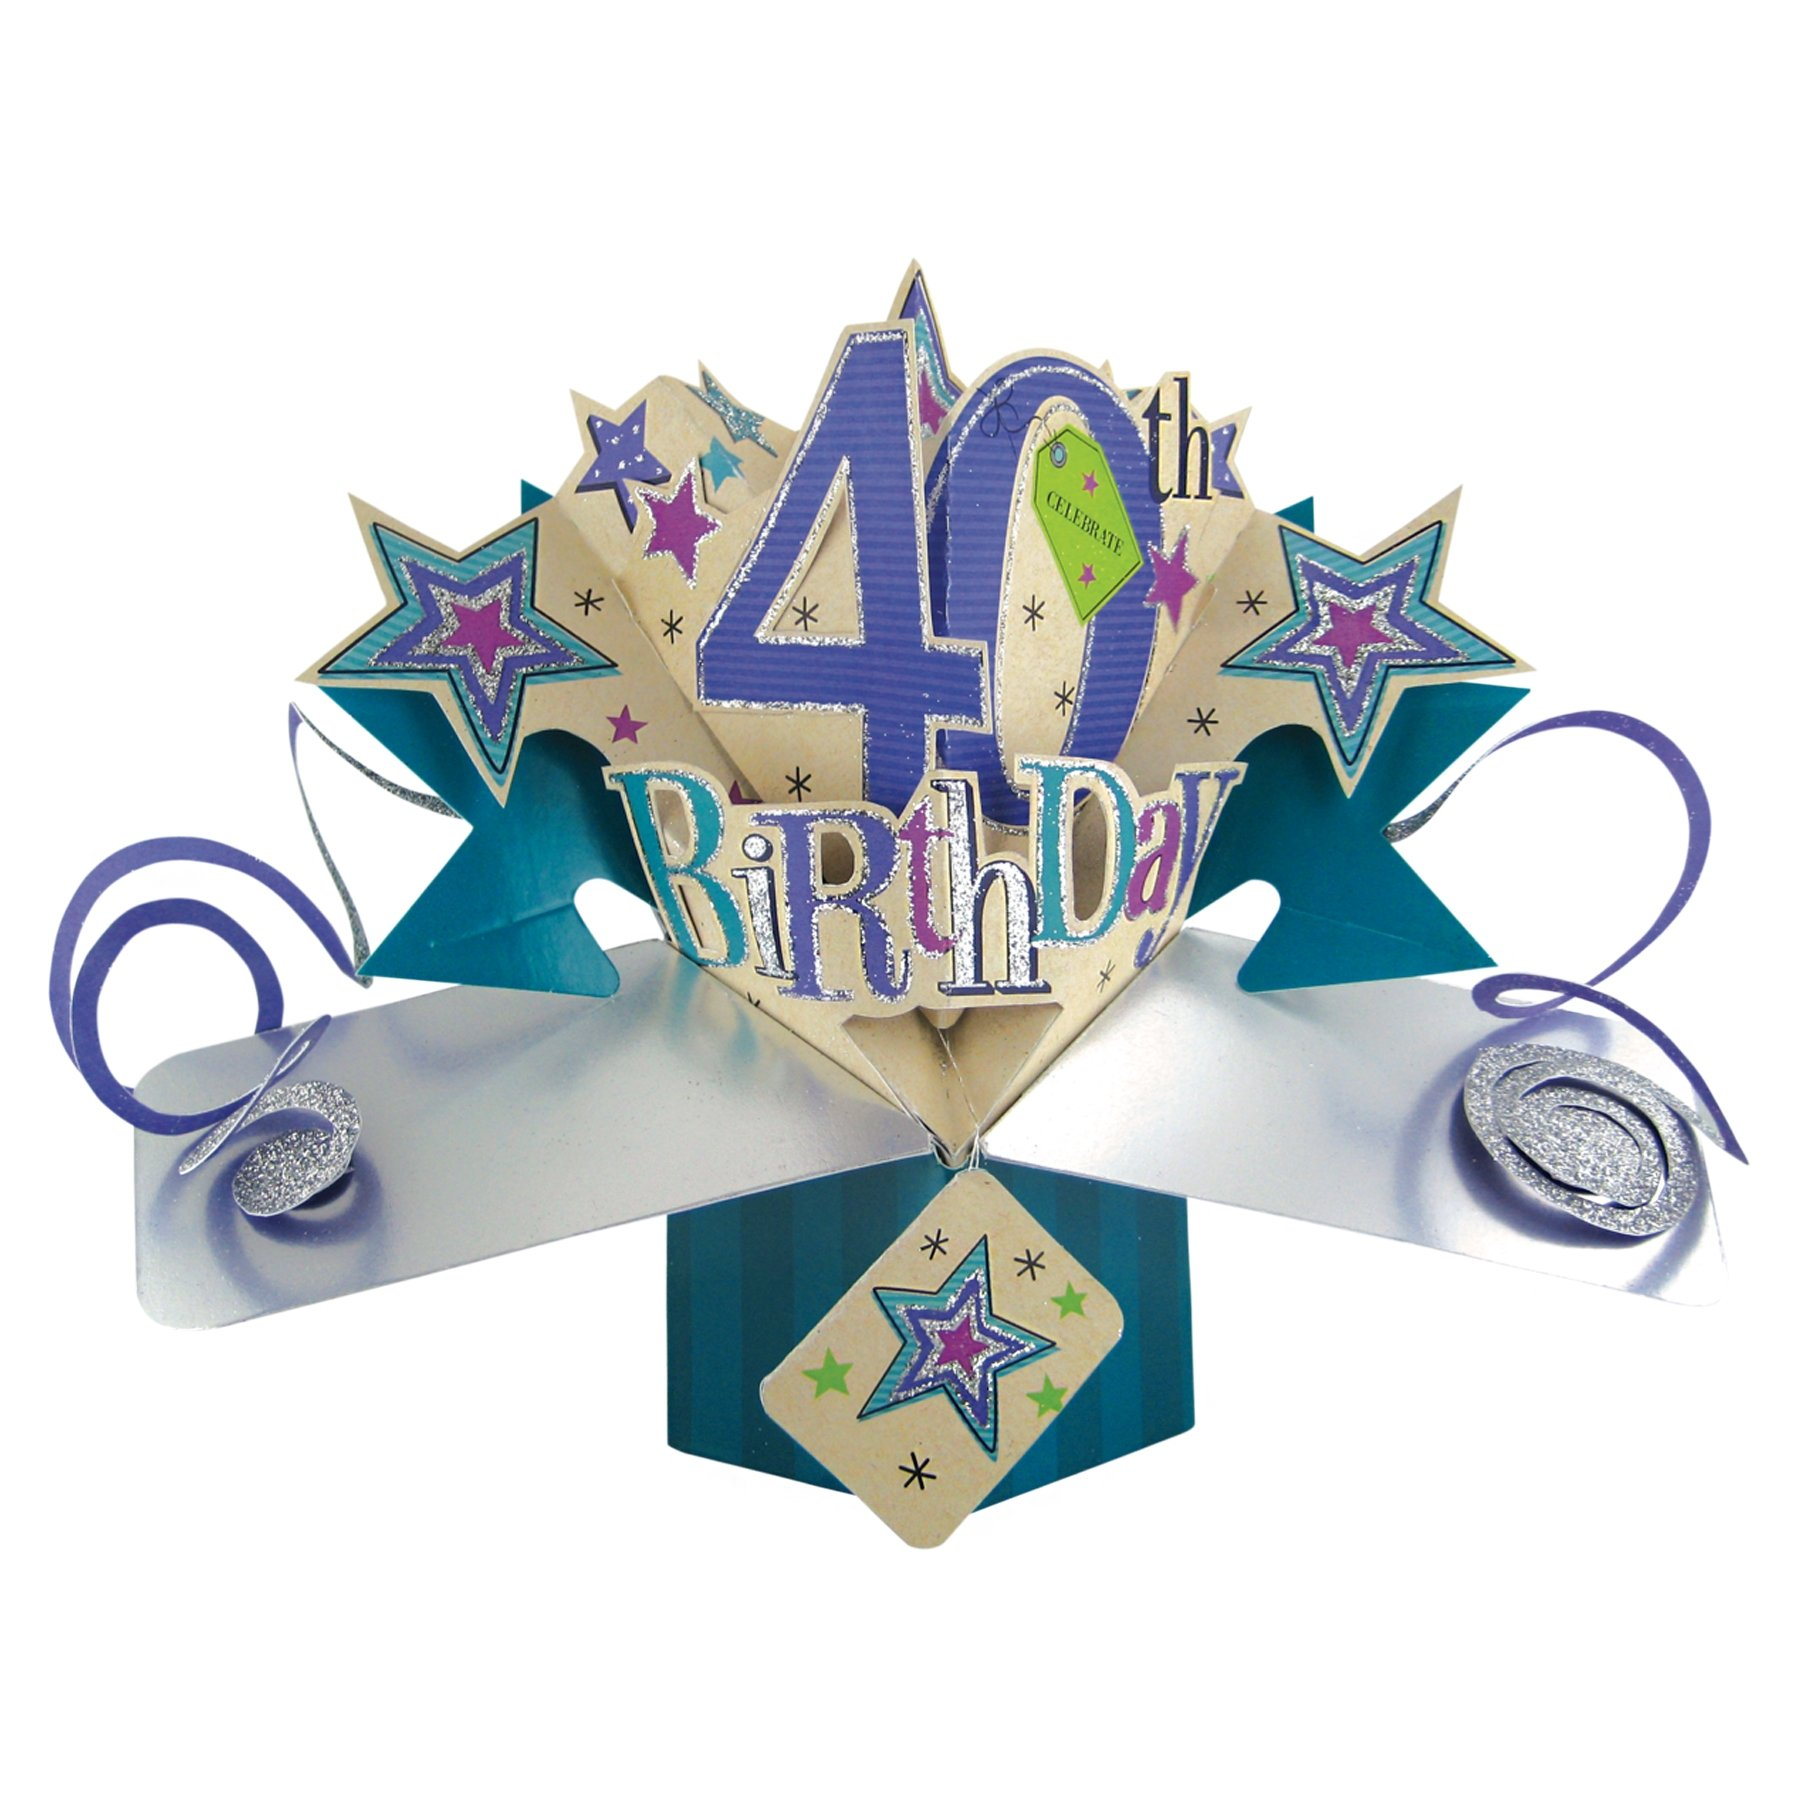 THE ORIGINAL POP UPS - 089 - 40TH BIRTHDAY - GREETING CARD [Office Product]